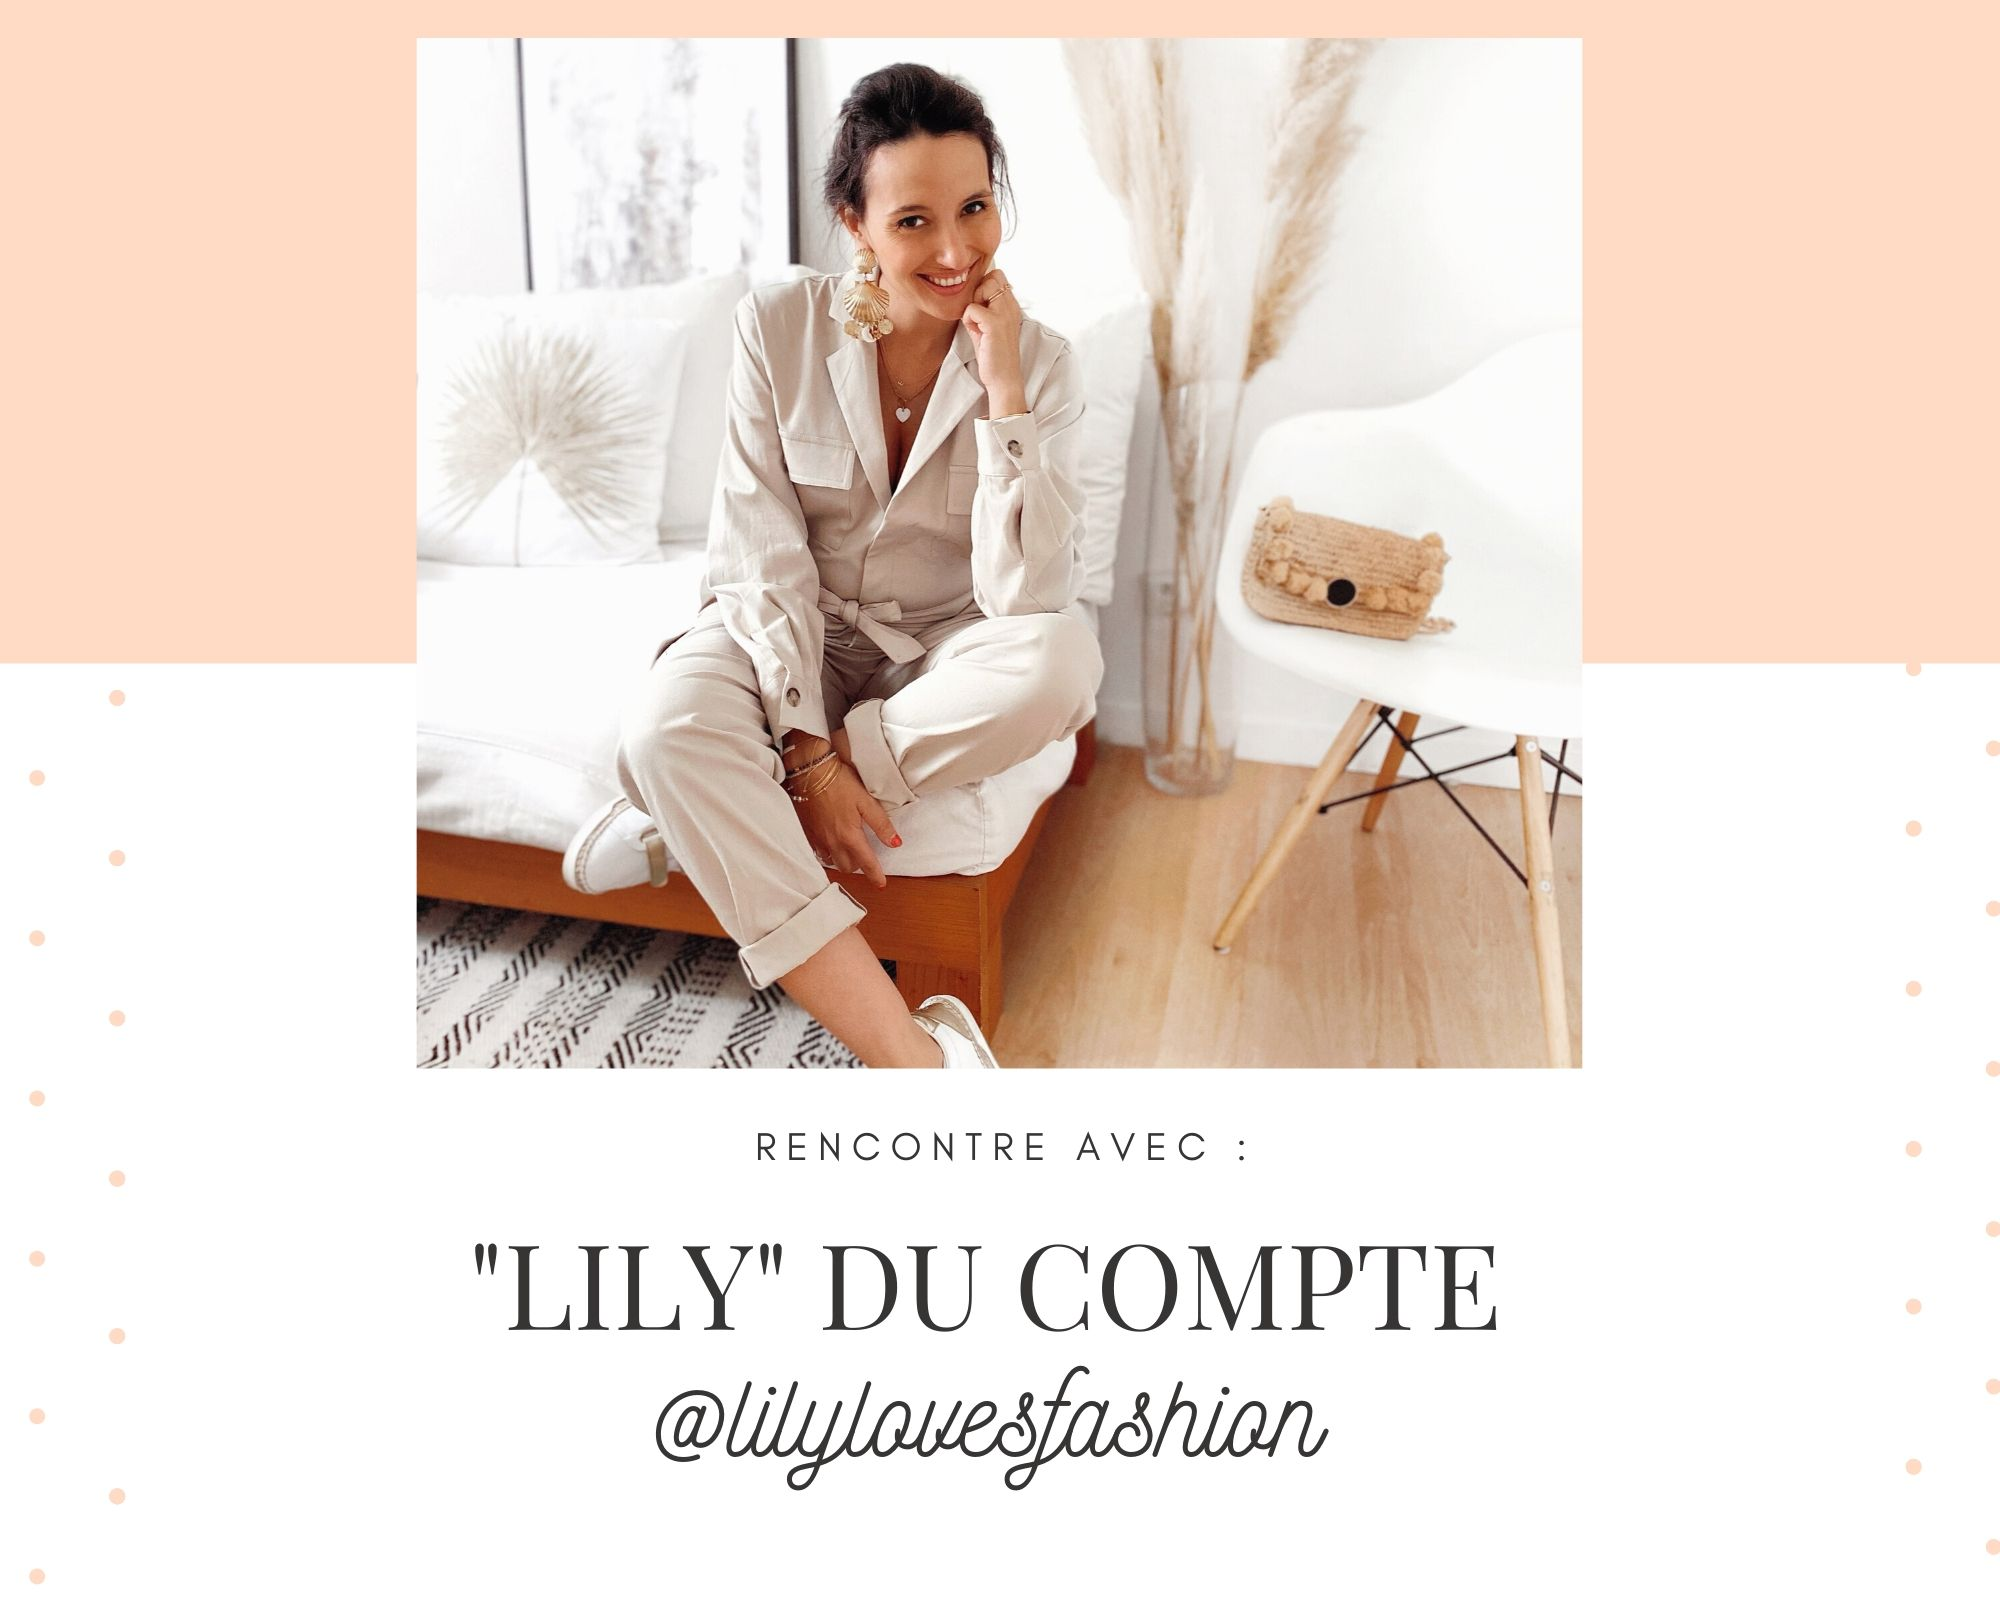 site rencontre lily)